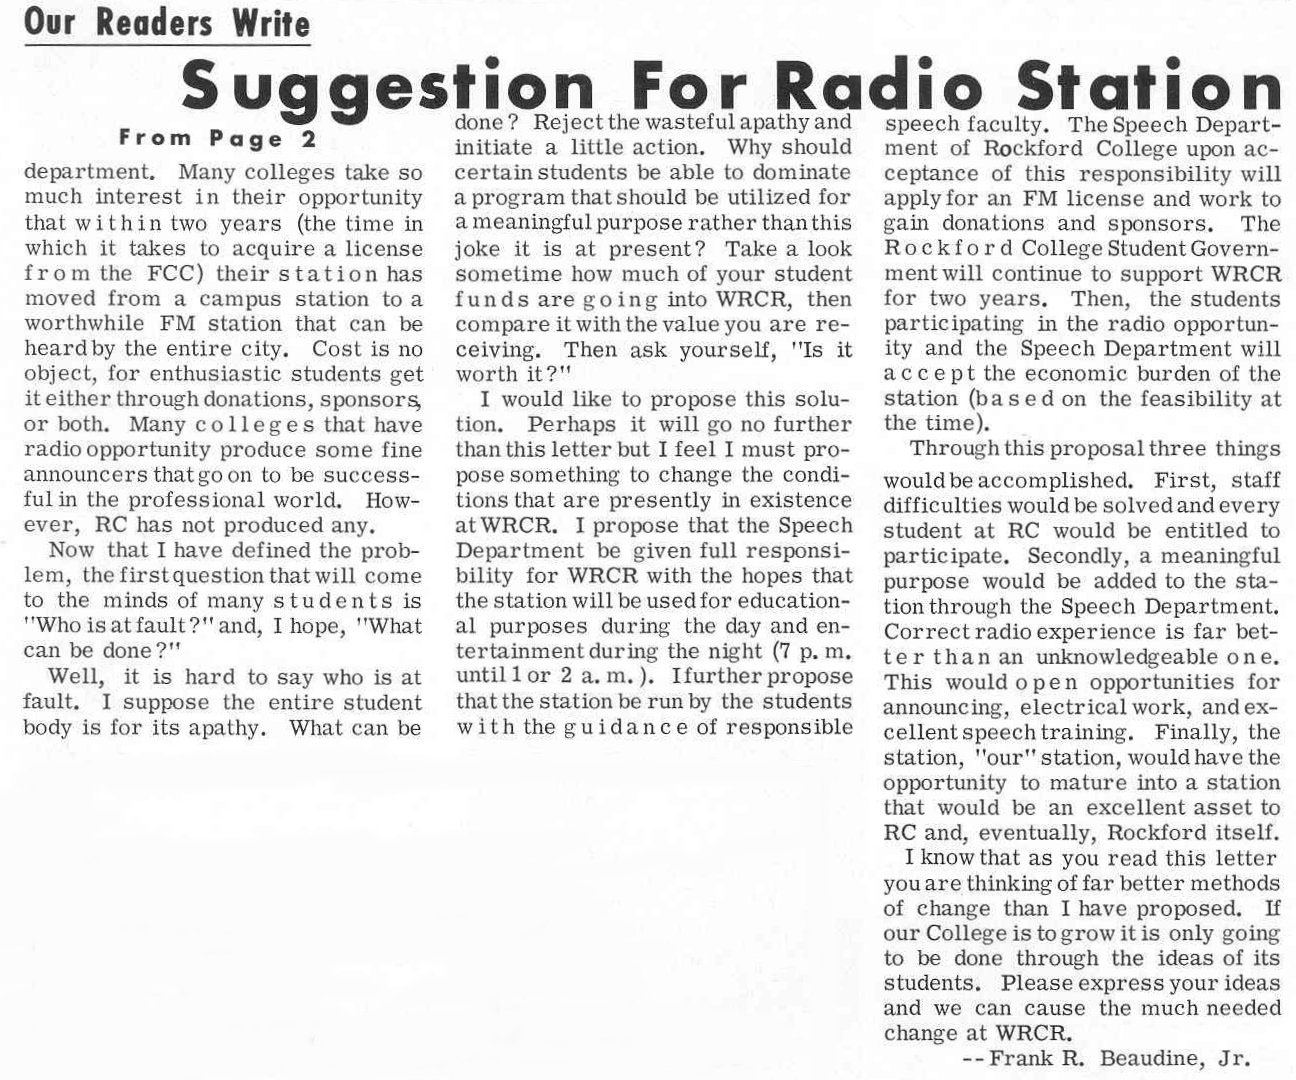 essay on a visit to radio station A musician's guide to community radio: stations that will actually play your music partner with your community radio station, share your music with your community, and help this valuable resource thrive top 10 community radio stations in the us.